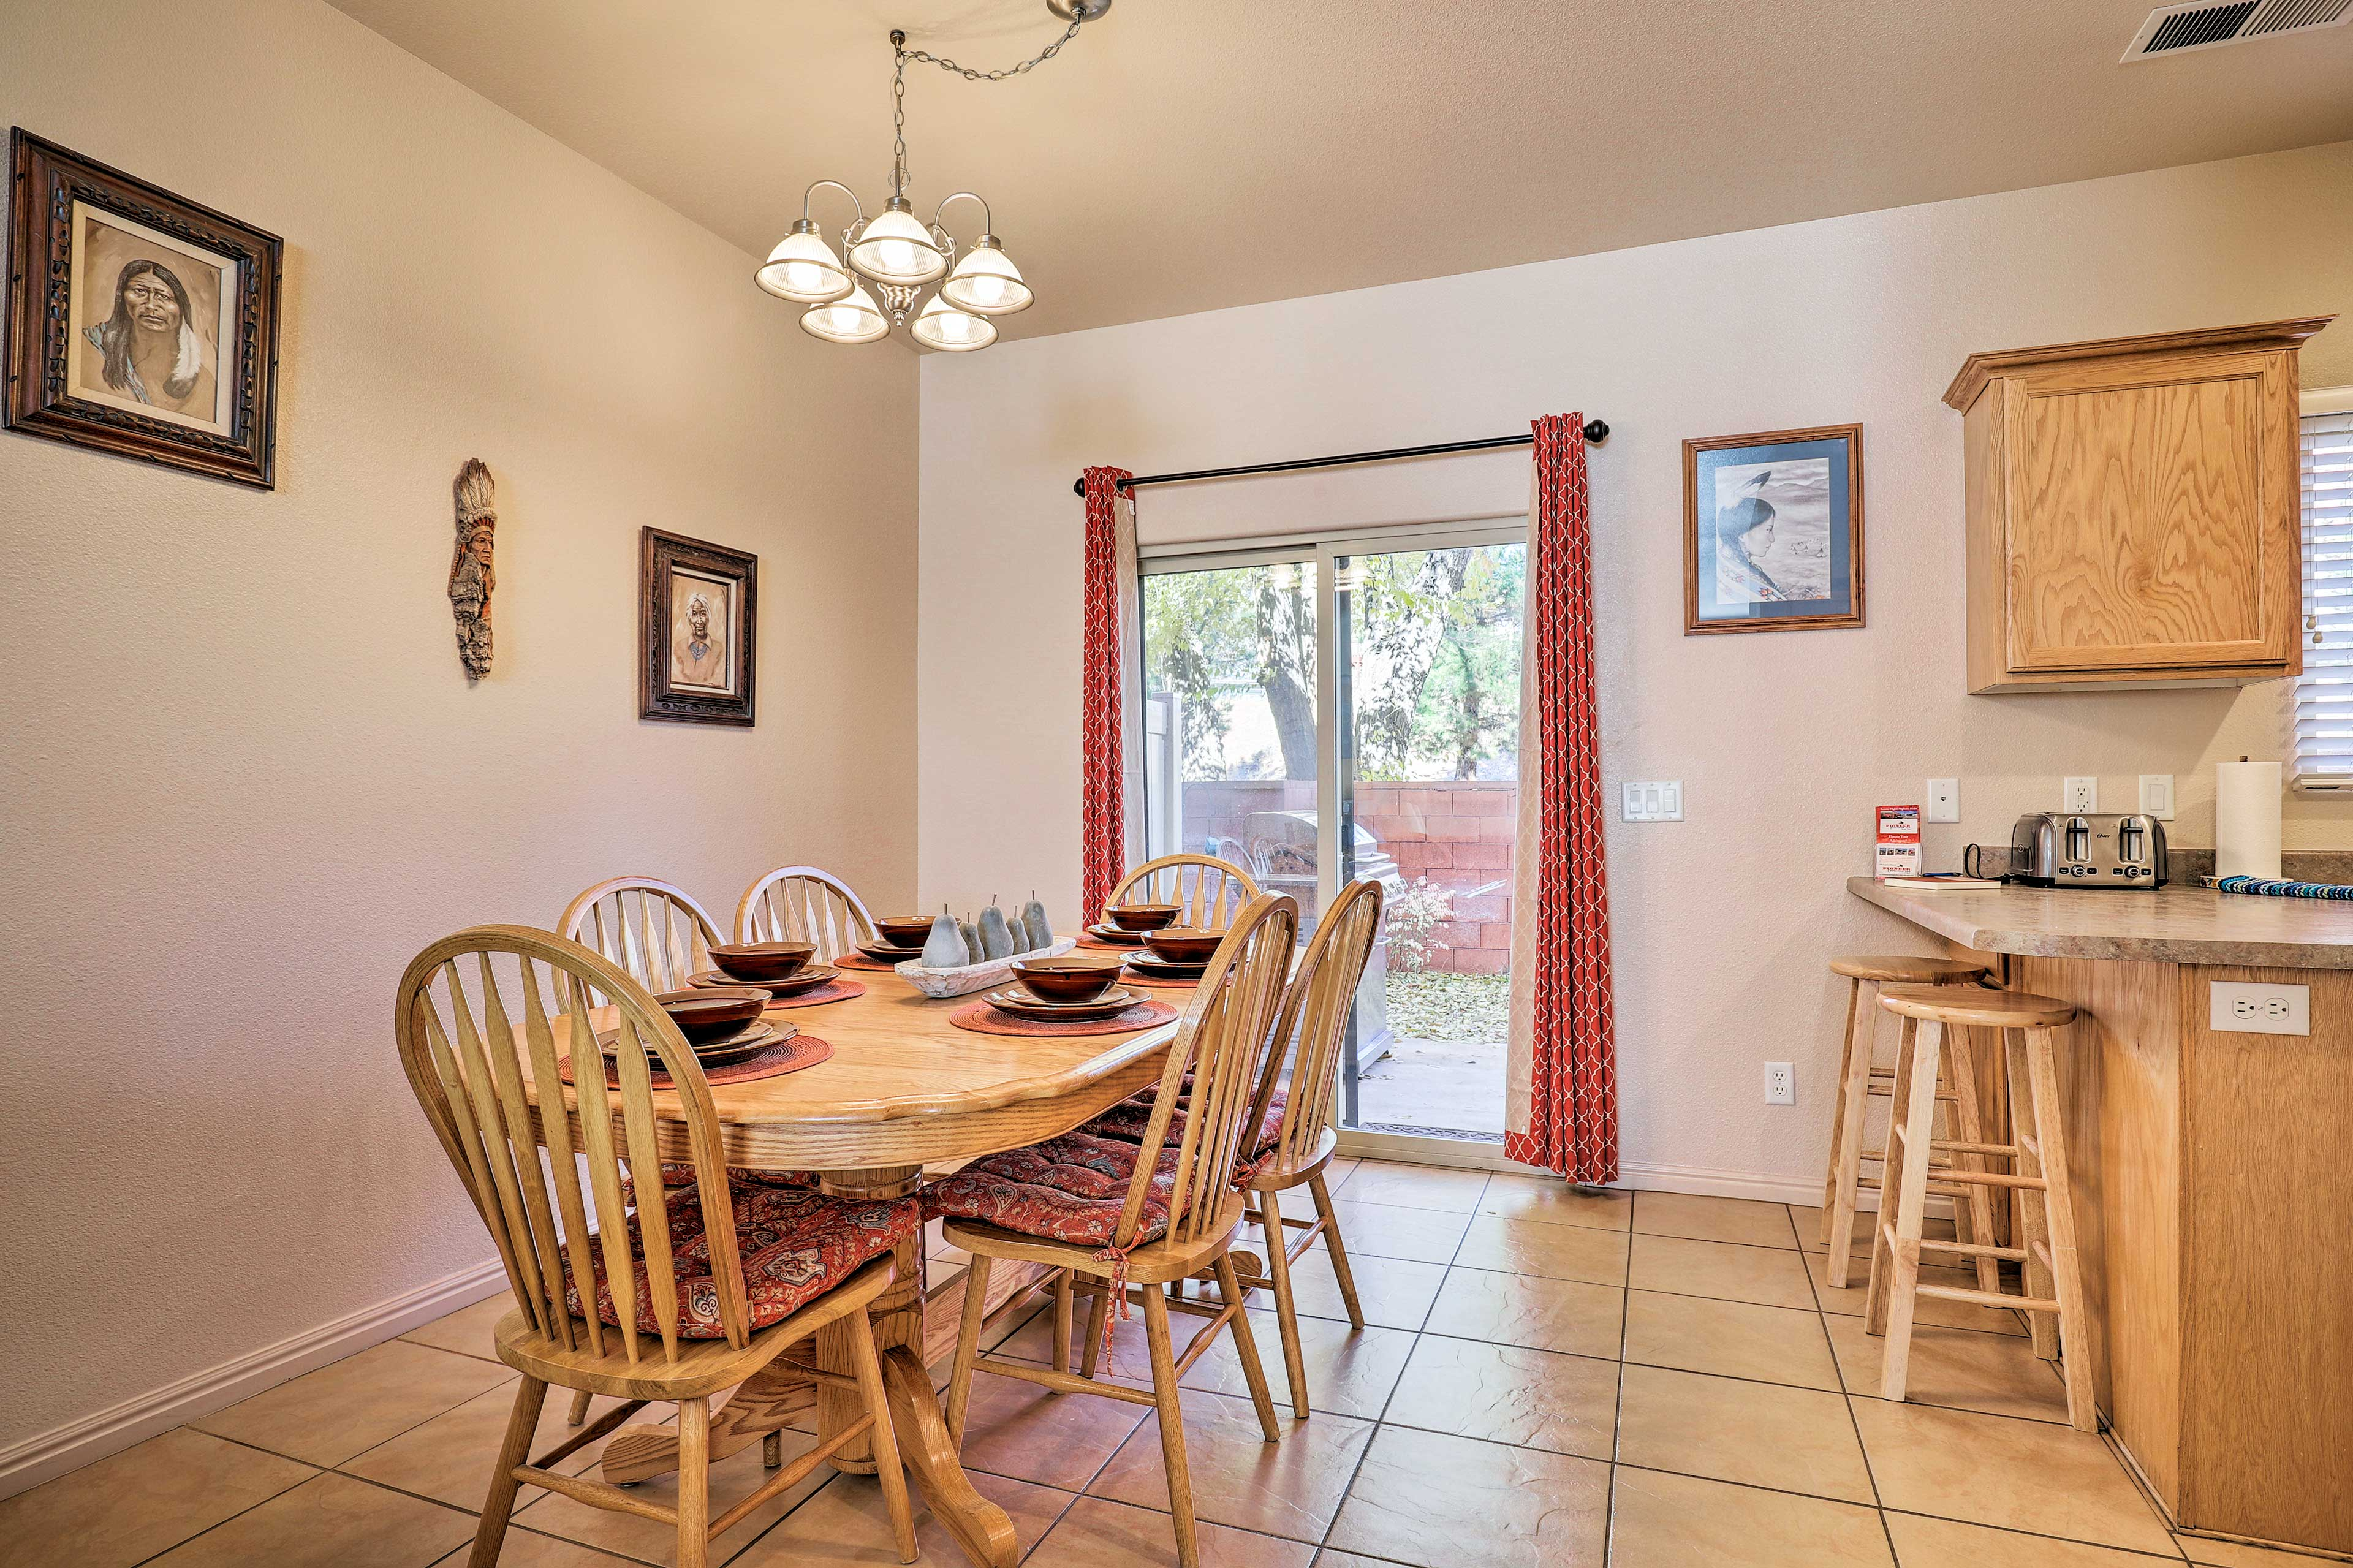 Gather the group for a family dinner around the rustic dining table.